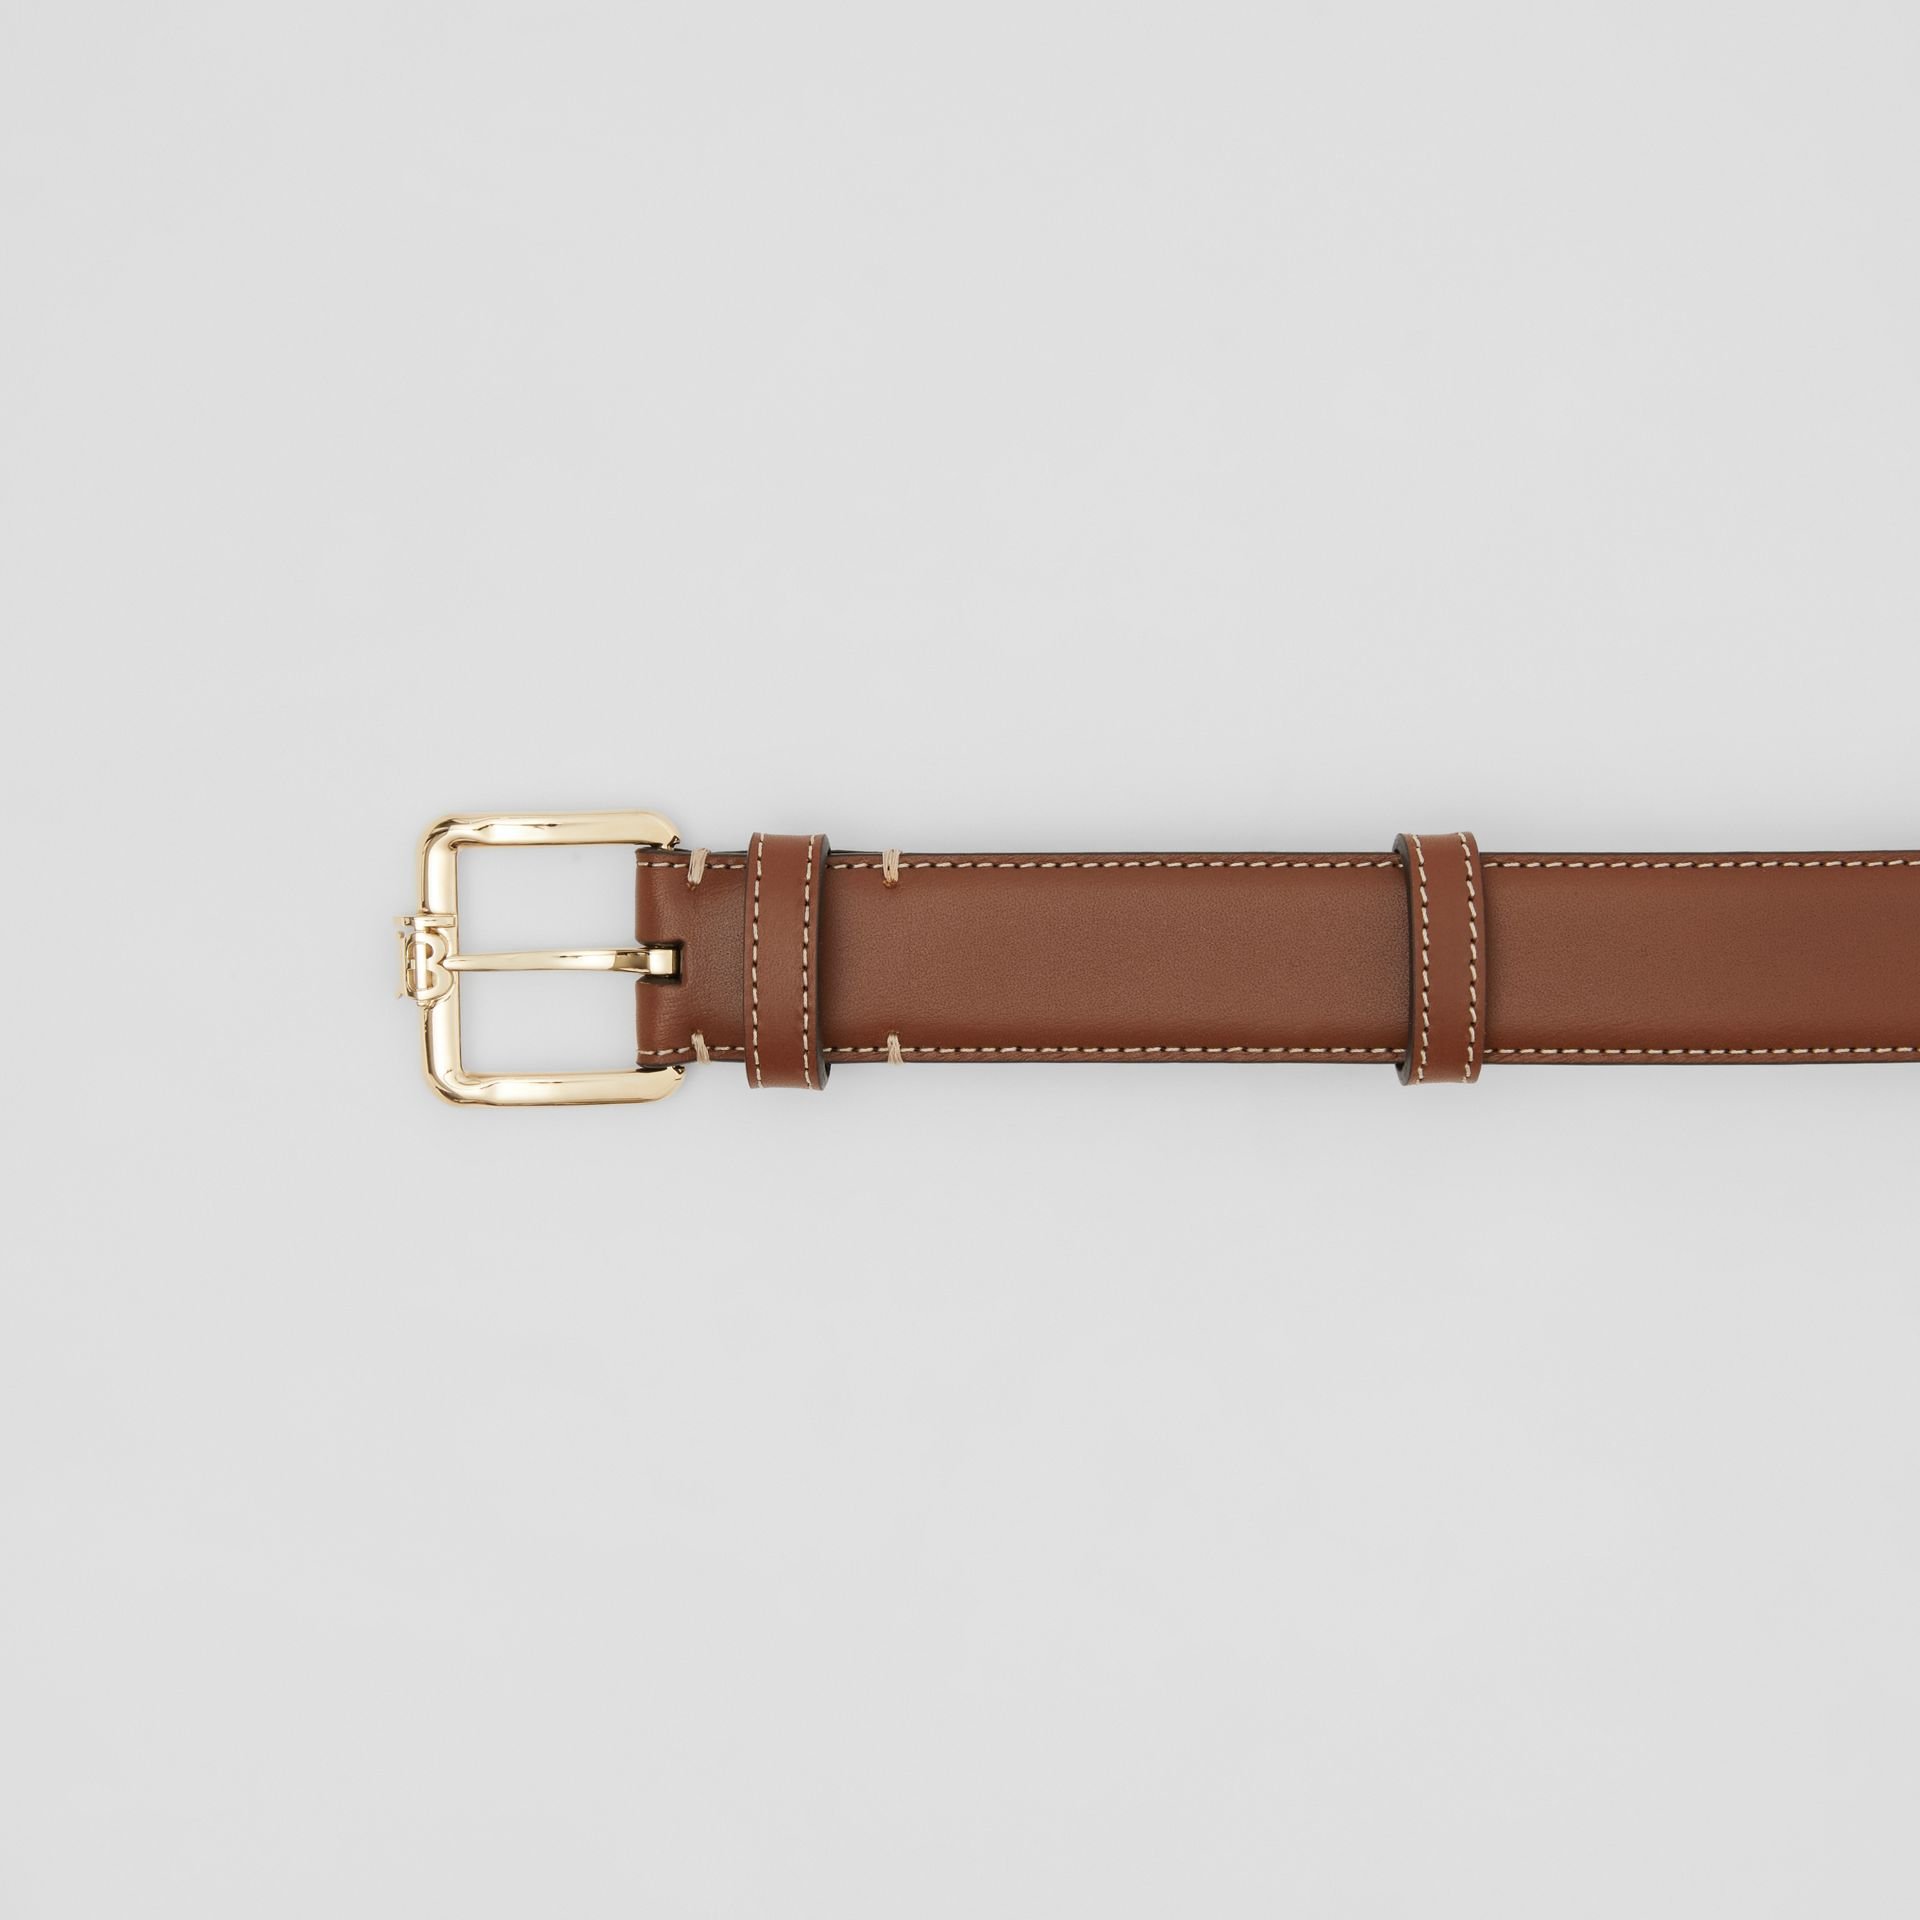 Monogram Motif Topstitched Leather Belt in Tan/light Gold - Women | Burberry - gallery image 1